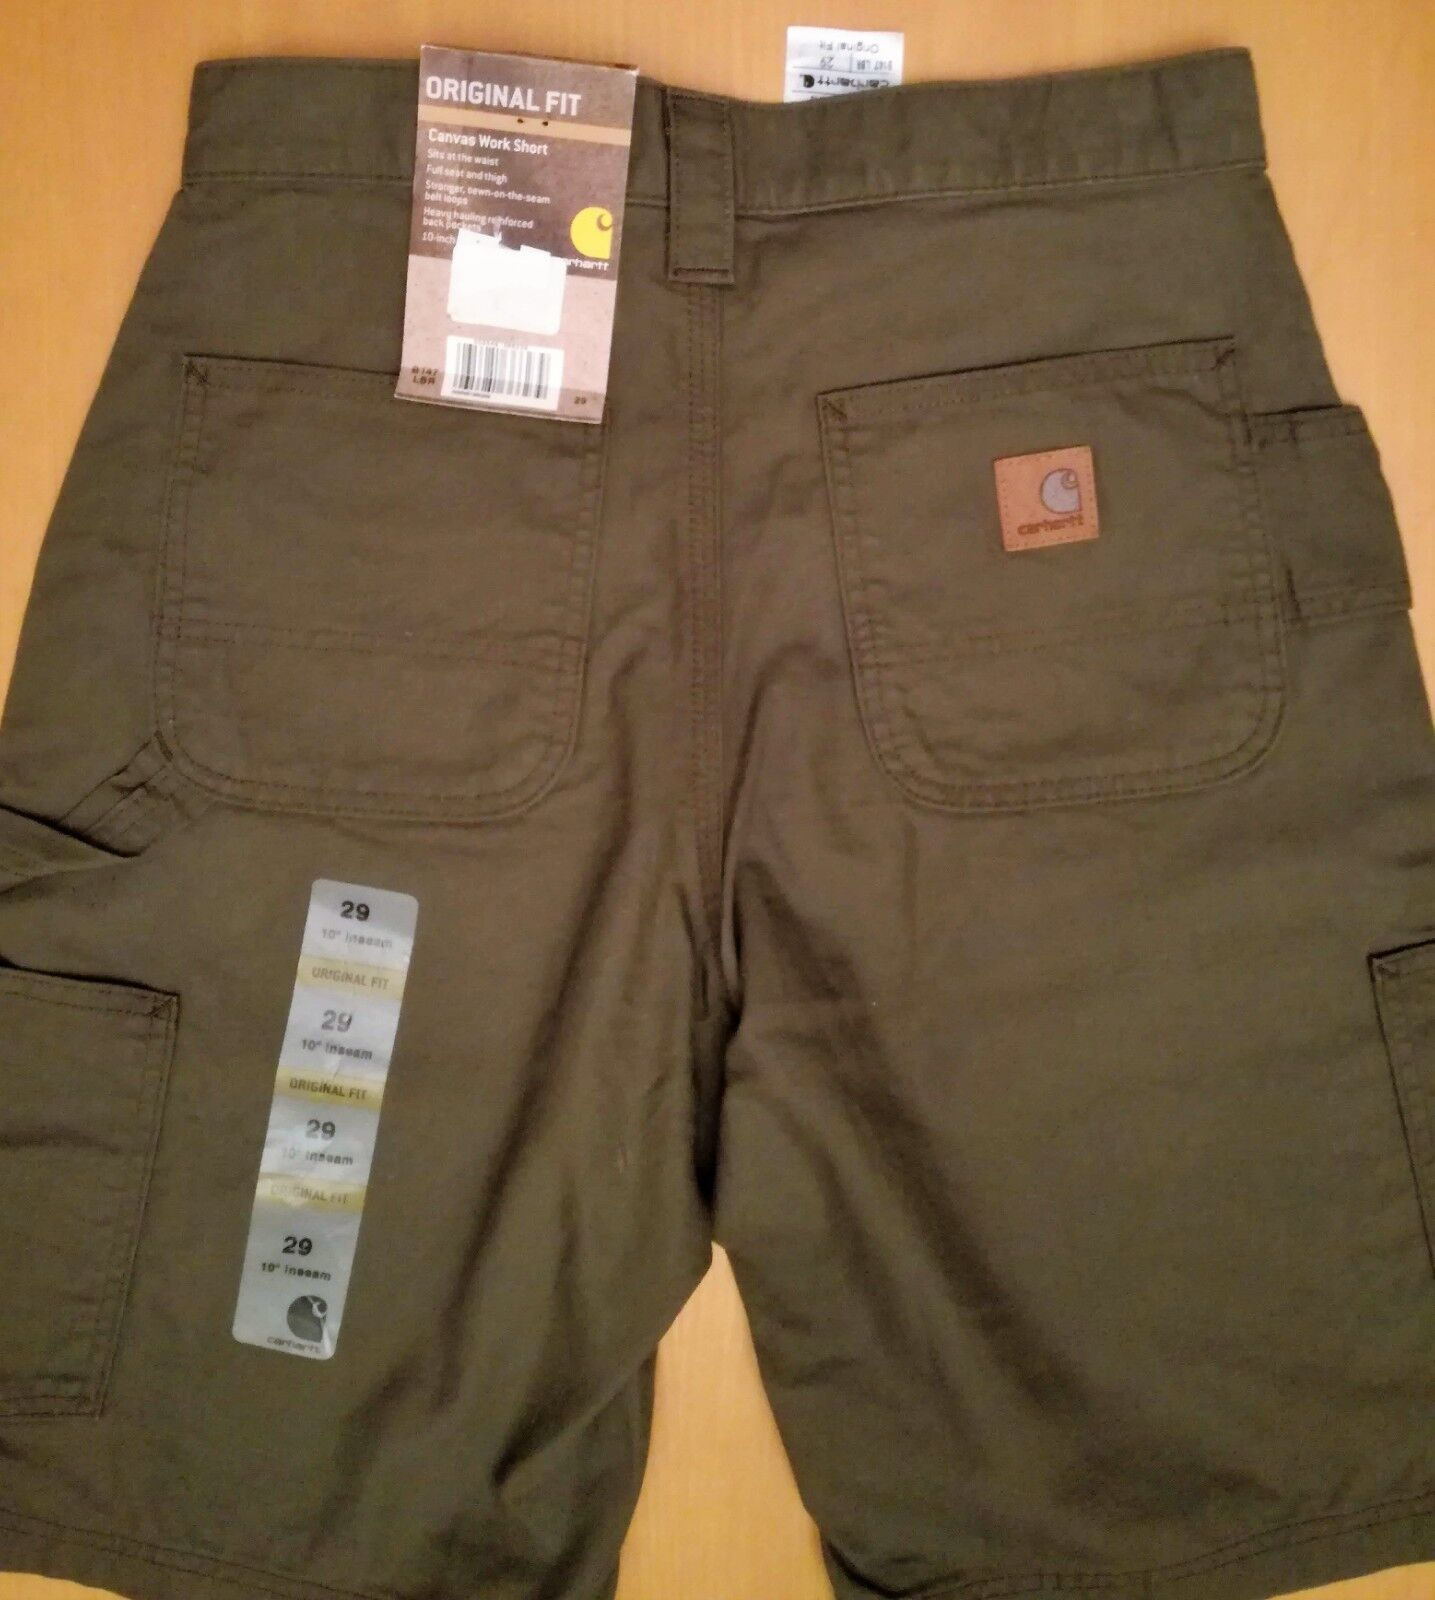 21d829c7998 Carhartt work Original Fit tg 29 NUOVI Canvas shorts ndpzpl18241 ...